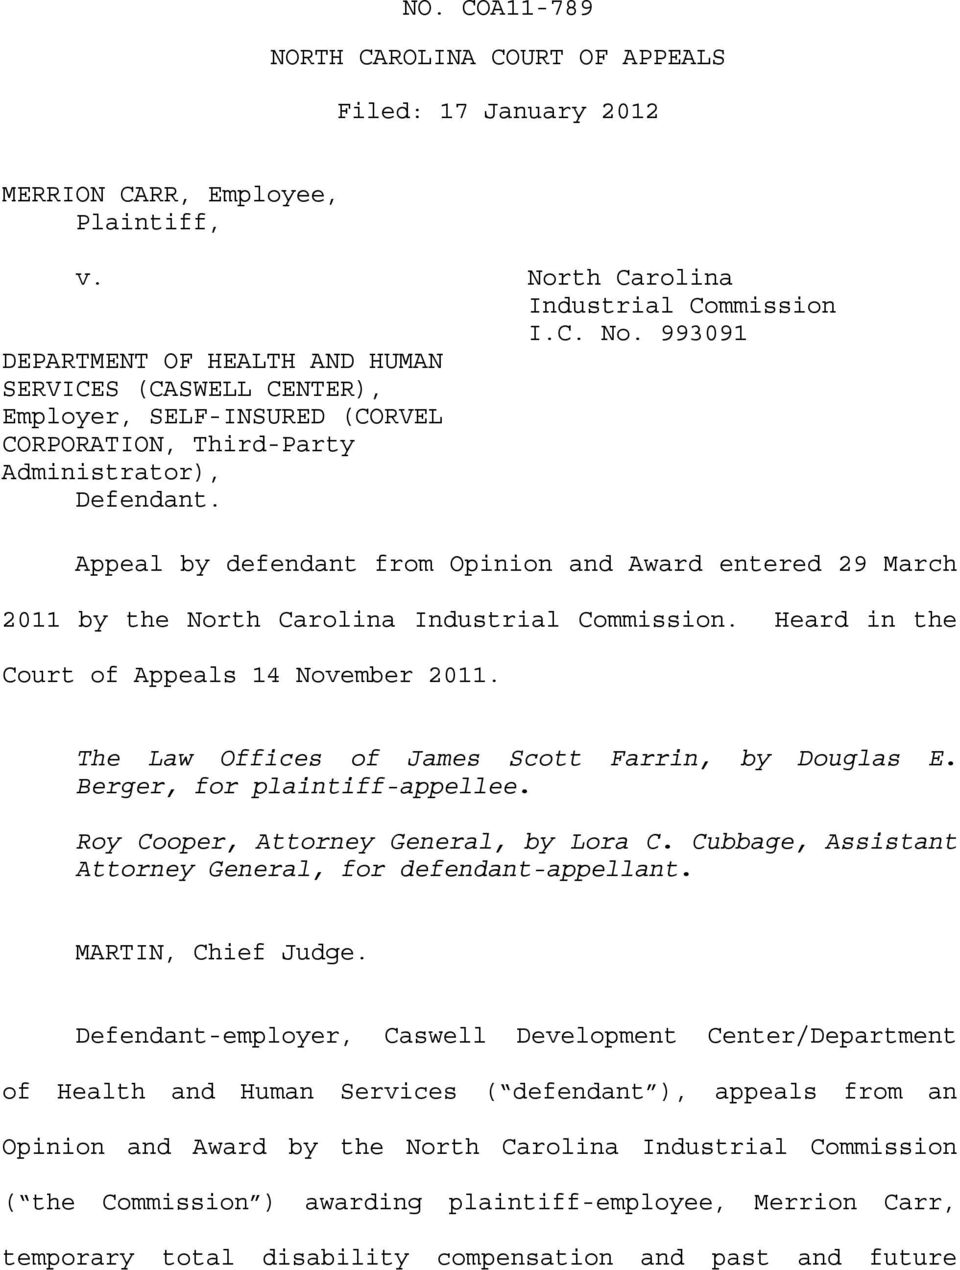 Appeal by defendant from Opinion and Award entered 29 March 2011 by the North Carolina Industrial Commission. Heard in the Court of Appeals 14 November 2011.